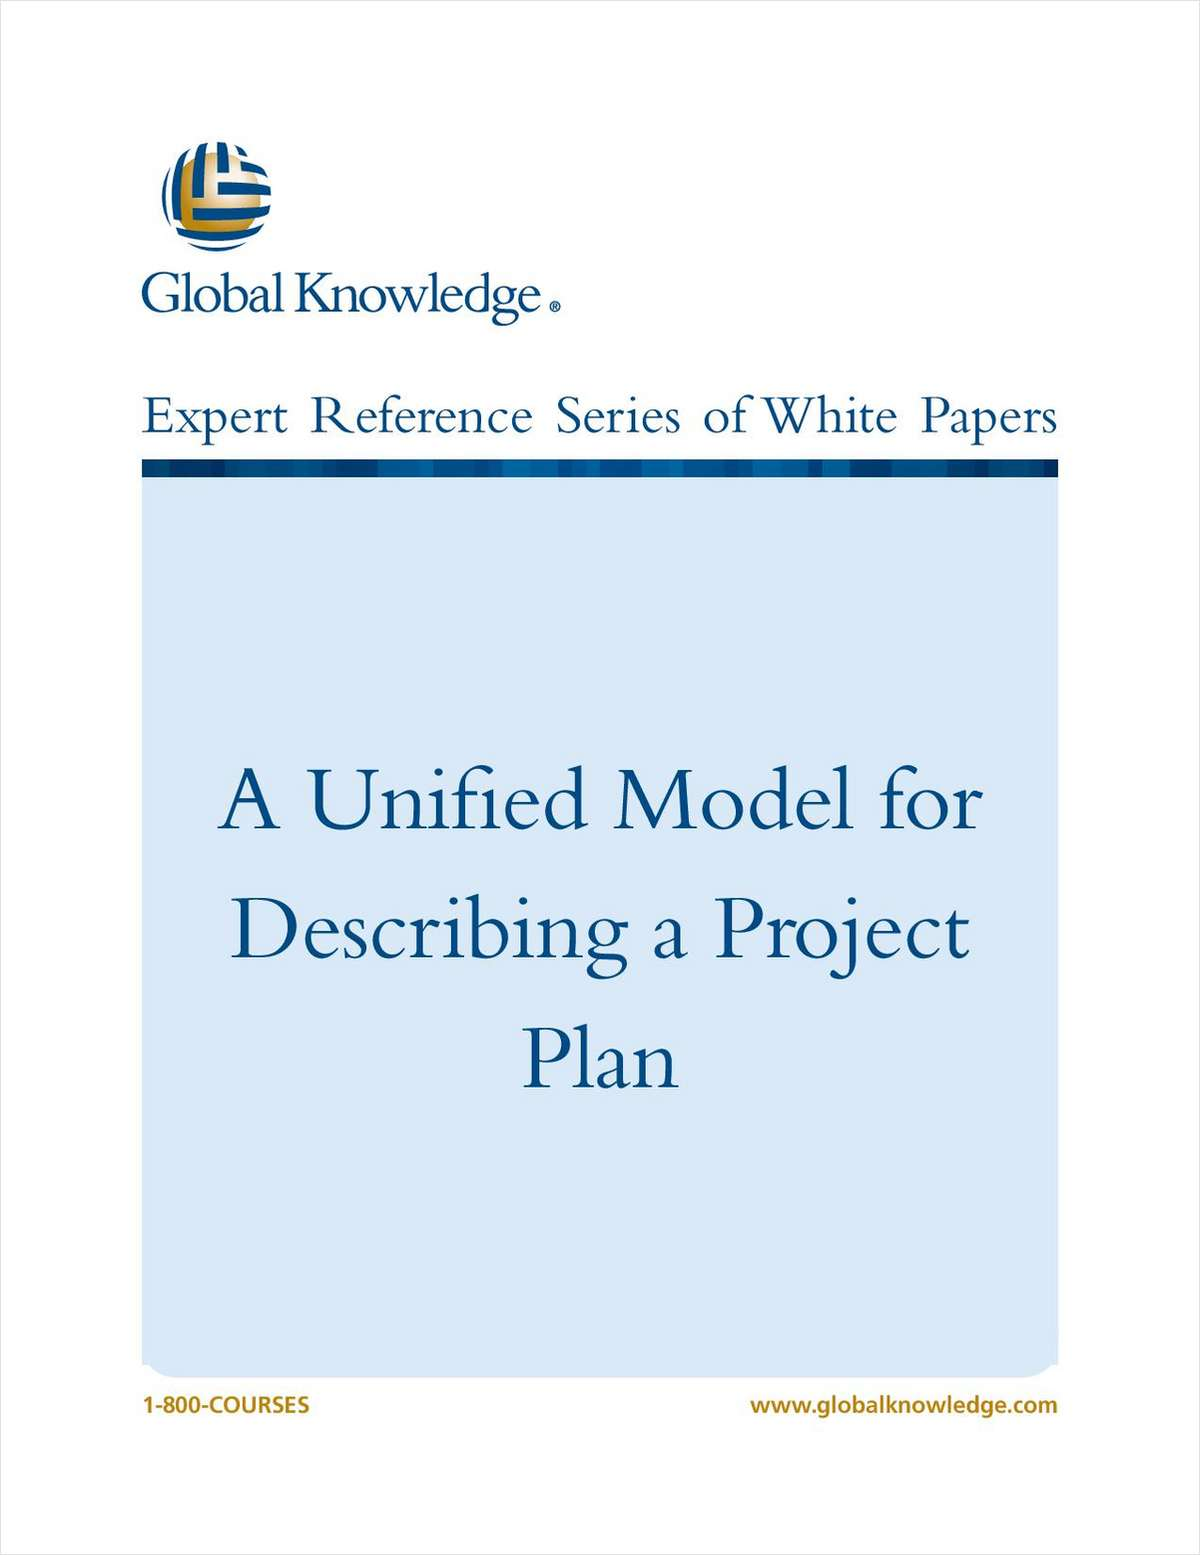 A Unified Model for Describing a Project Plan